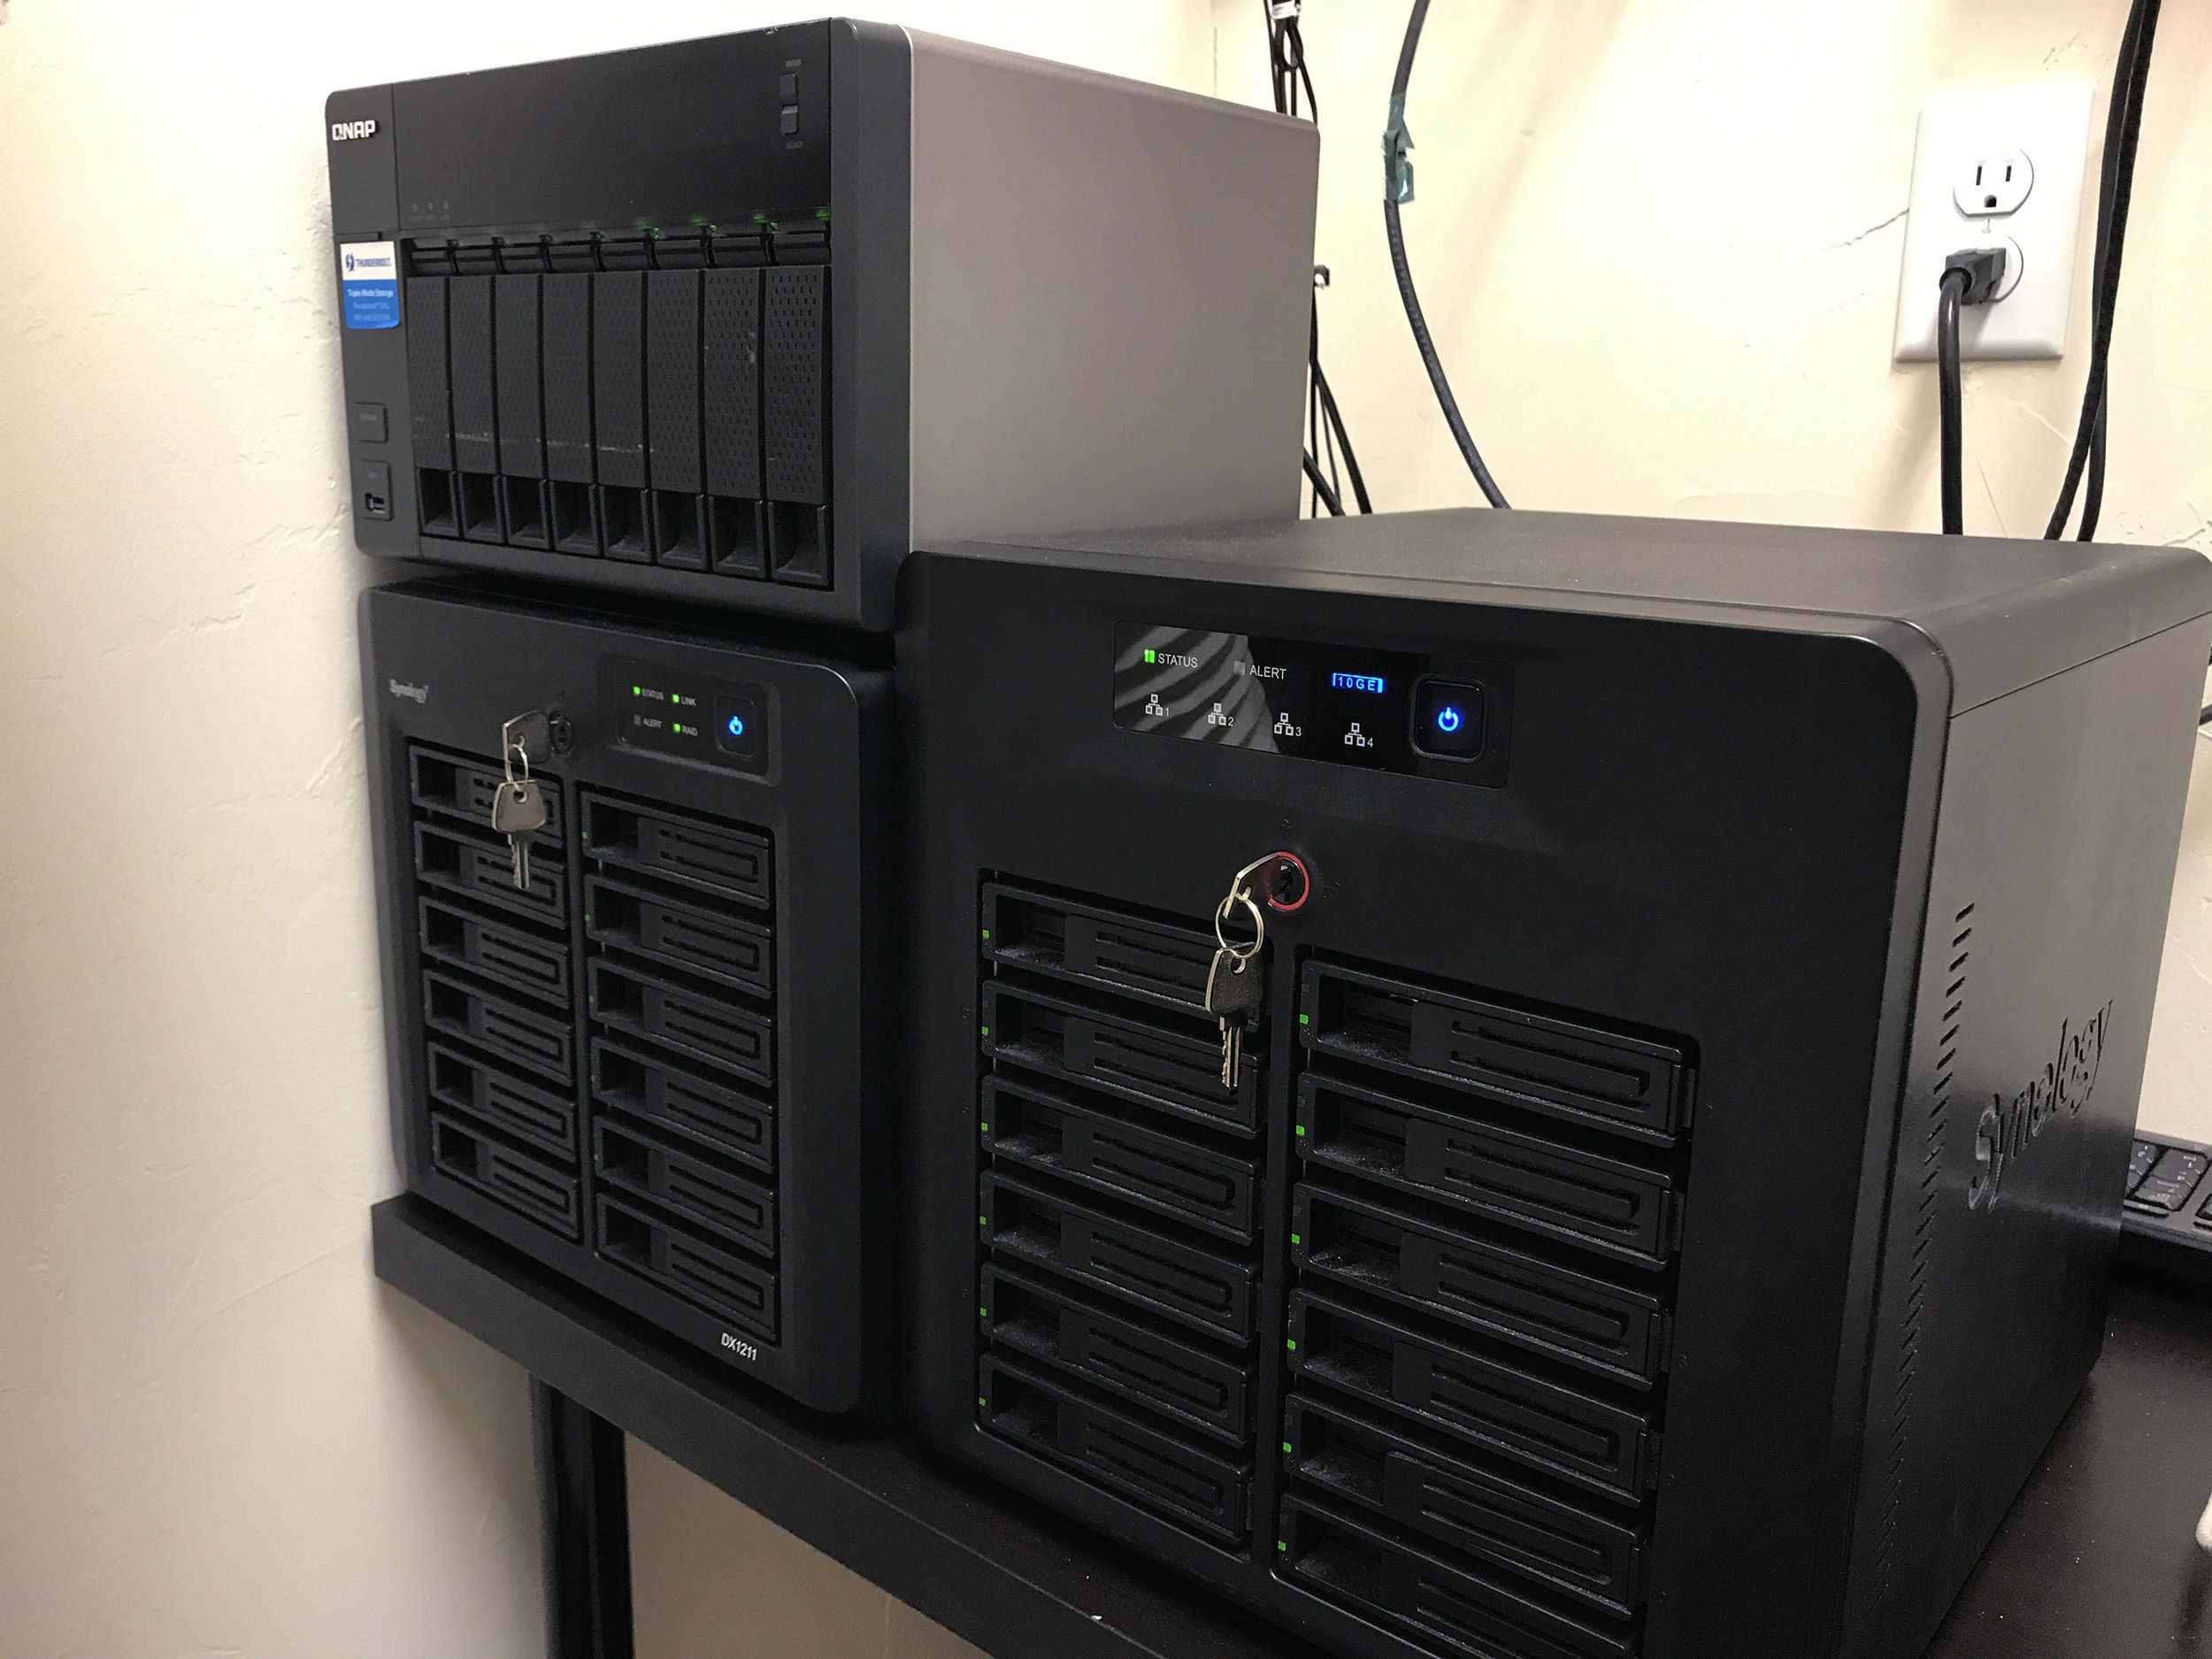 Network Attached Storage in-use at Mystery Box. NAS #1 is a Synology DS3612xs with DX1211 expansion unit, supporting up to 24 hard drives or SSDs (currently configured with 20 x 8TB HDD + 1 SSD with two disk redundancy for 144TB of Network Storage). NAS #2 is a QNAP TVS-871T populated with 8 x 6TB HDD with one disk redundancy. The Synology is used for archival storage while the QNAP is used for active RAW and Intermediate storage.